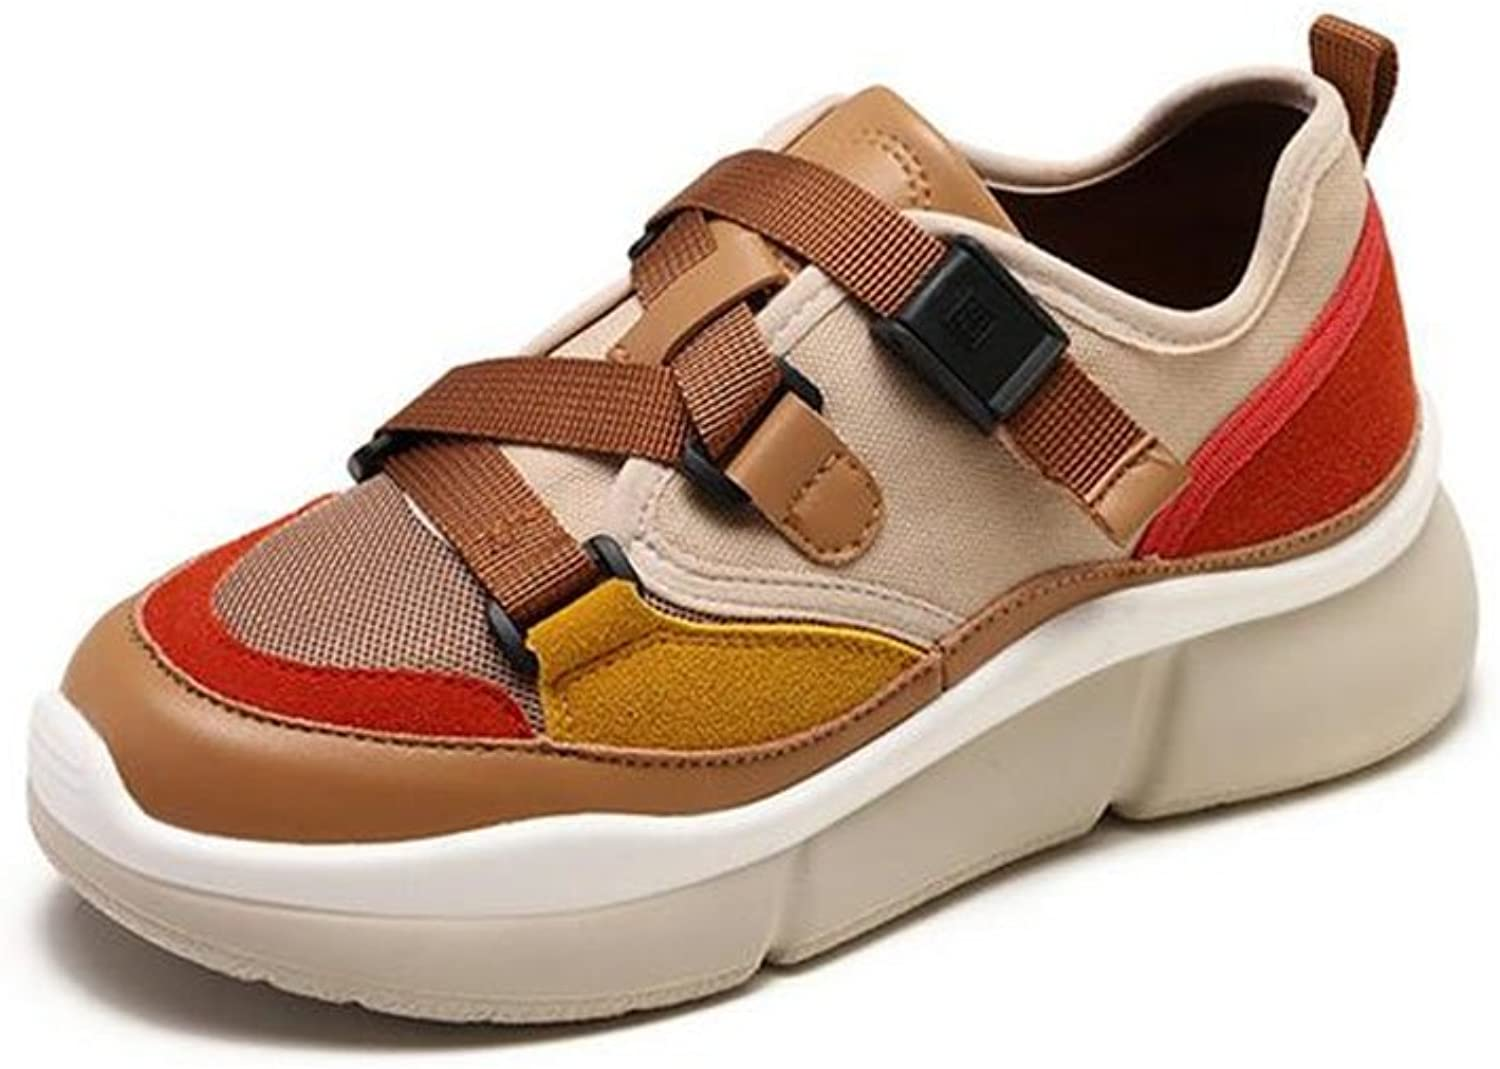 Exing Womens's shoes Mesh Sneakers,2018 Summer New Academy Casual shoes,Breathable Flat Athletic shoes